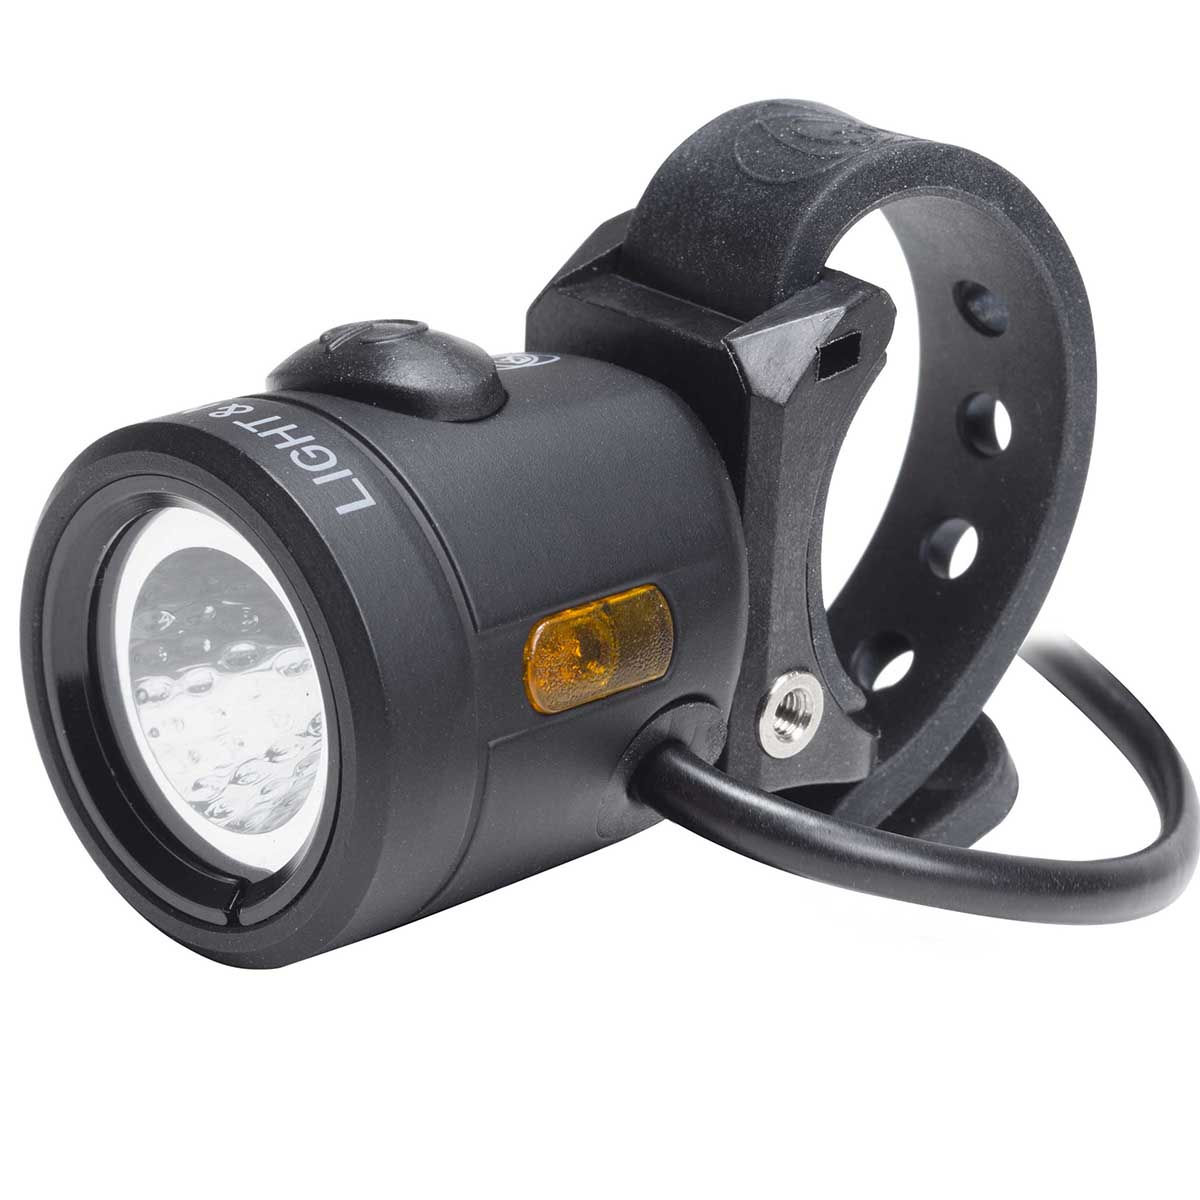 Luz delantera Light and Motion Imjin 800 Onyx - Luces delanteras